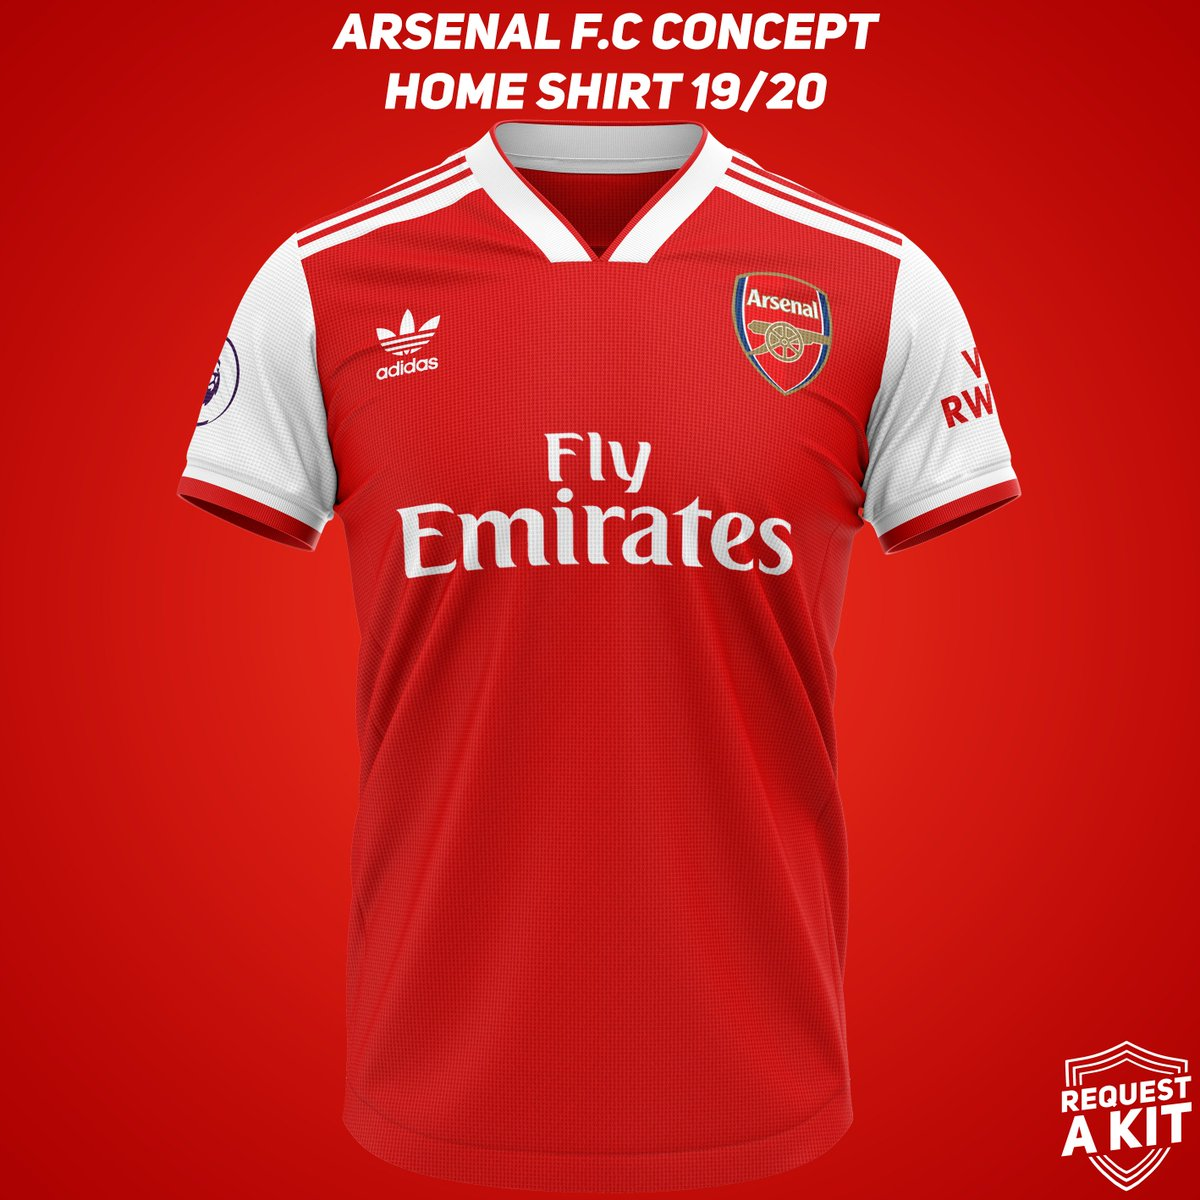 de502046c15 Arsenal F.C Concept Home, Away and Third Shirts 19/20 #Arsenal #AFC  #gunners #adidas #FM18 #FM19 #WeAreTheCommunitypic.twitter.com/wszKNj0Snz